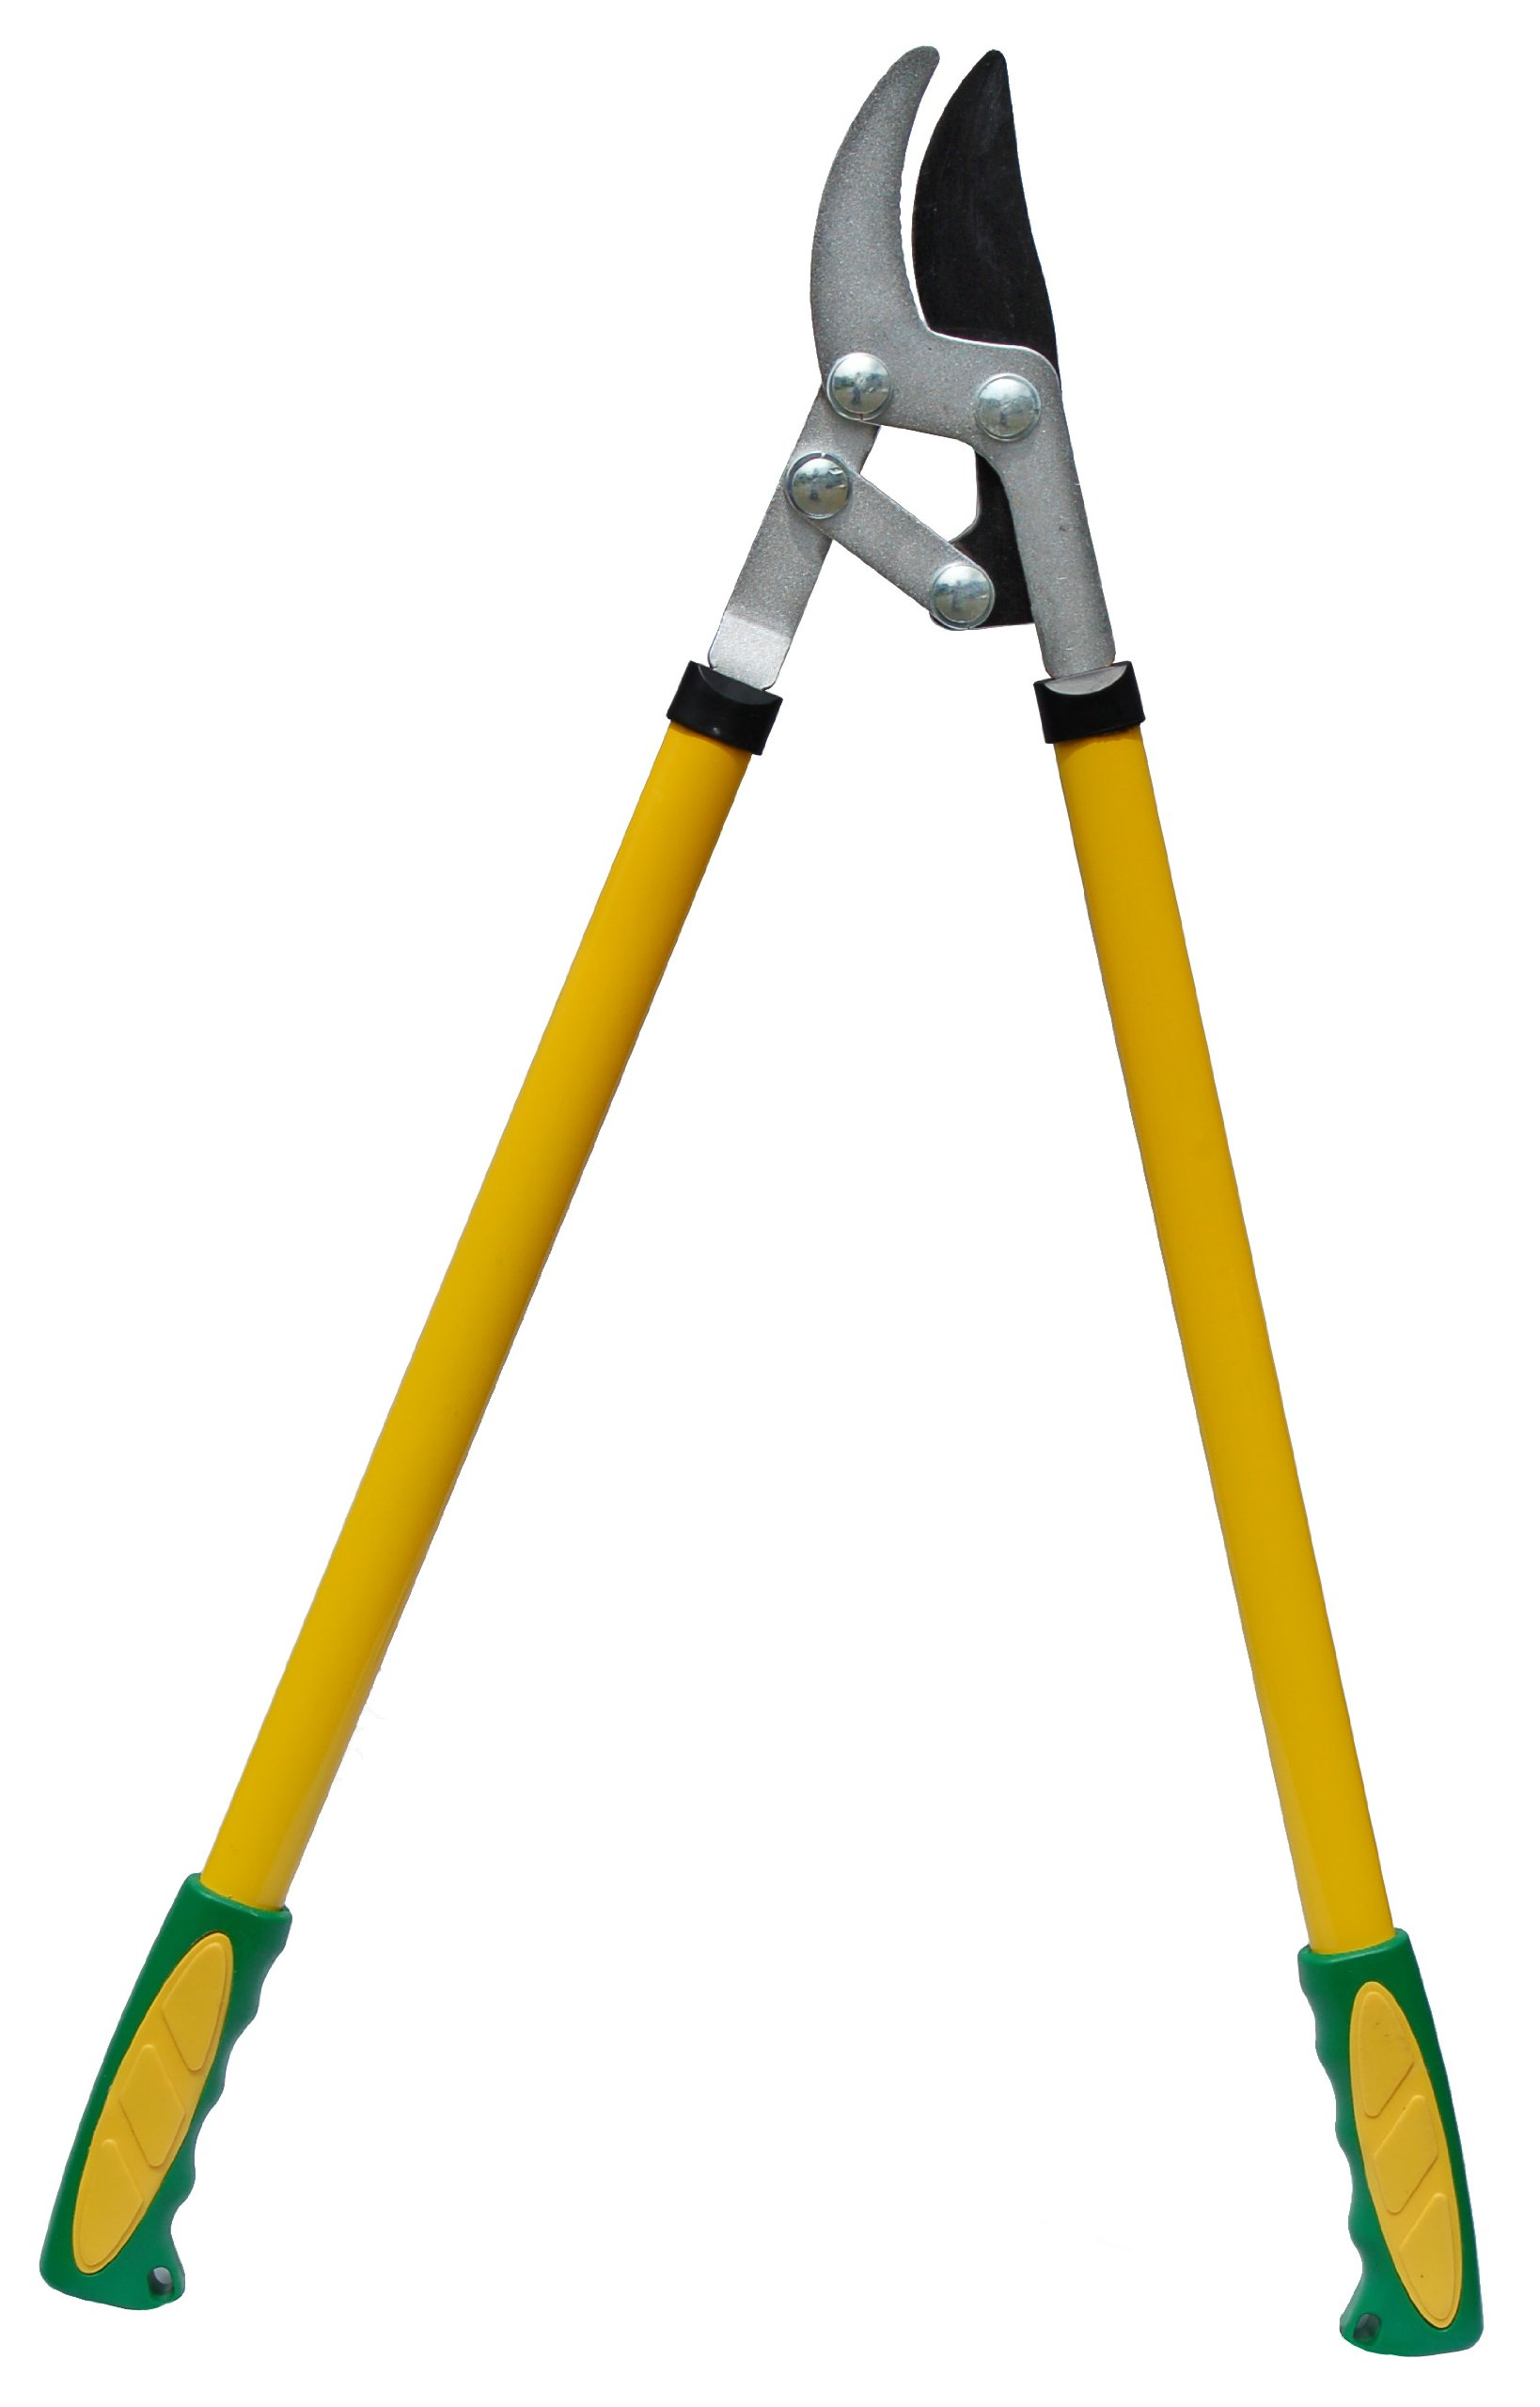 Zenport LS150 Compound Action Bypass Lopper, 30.5-Inch